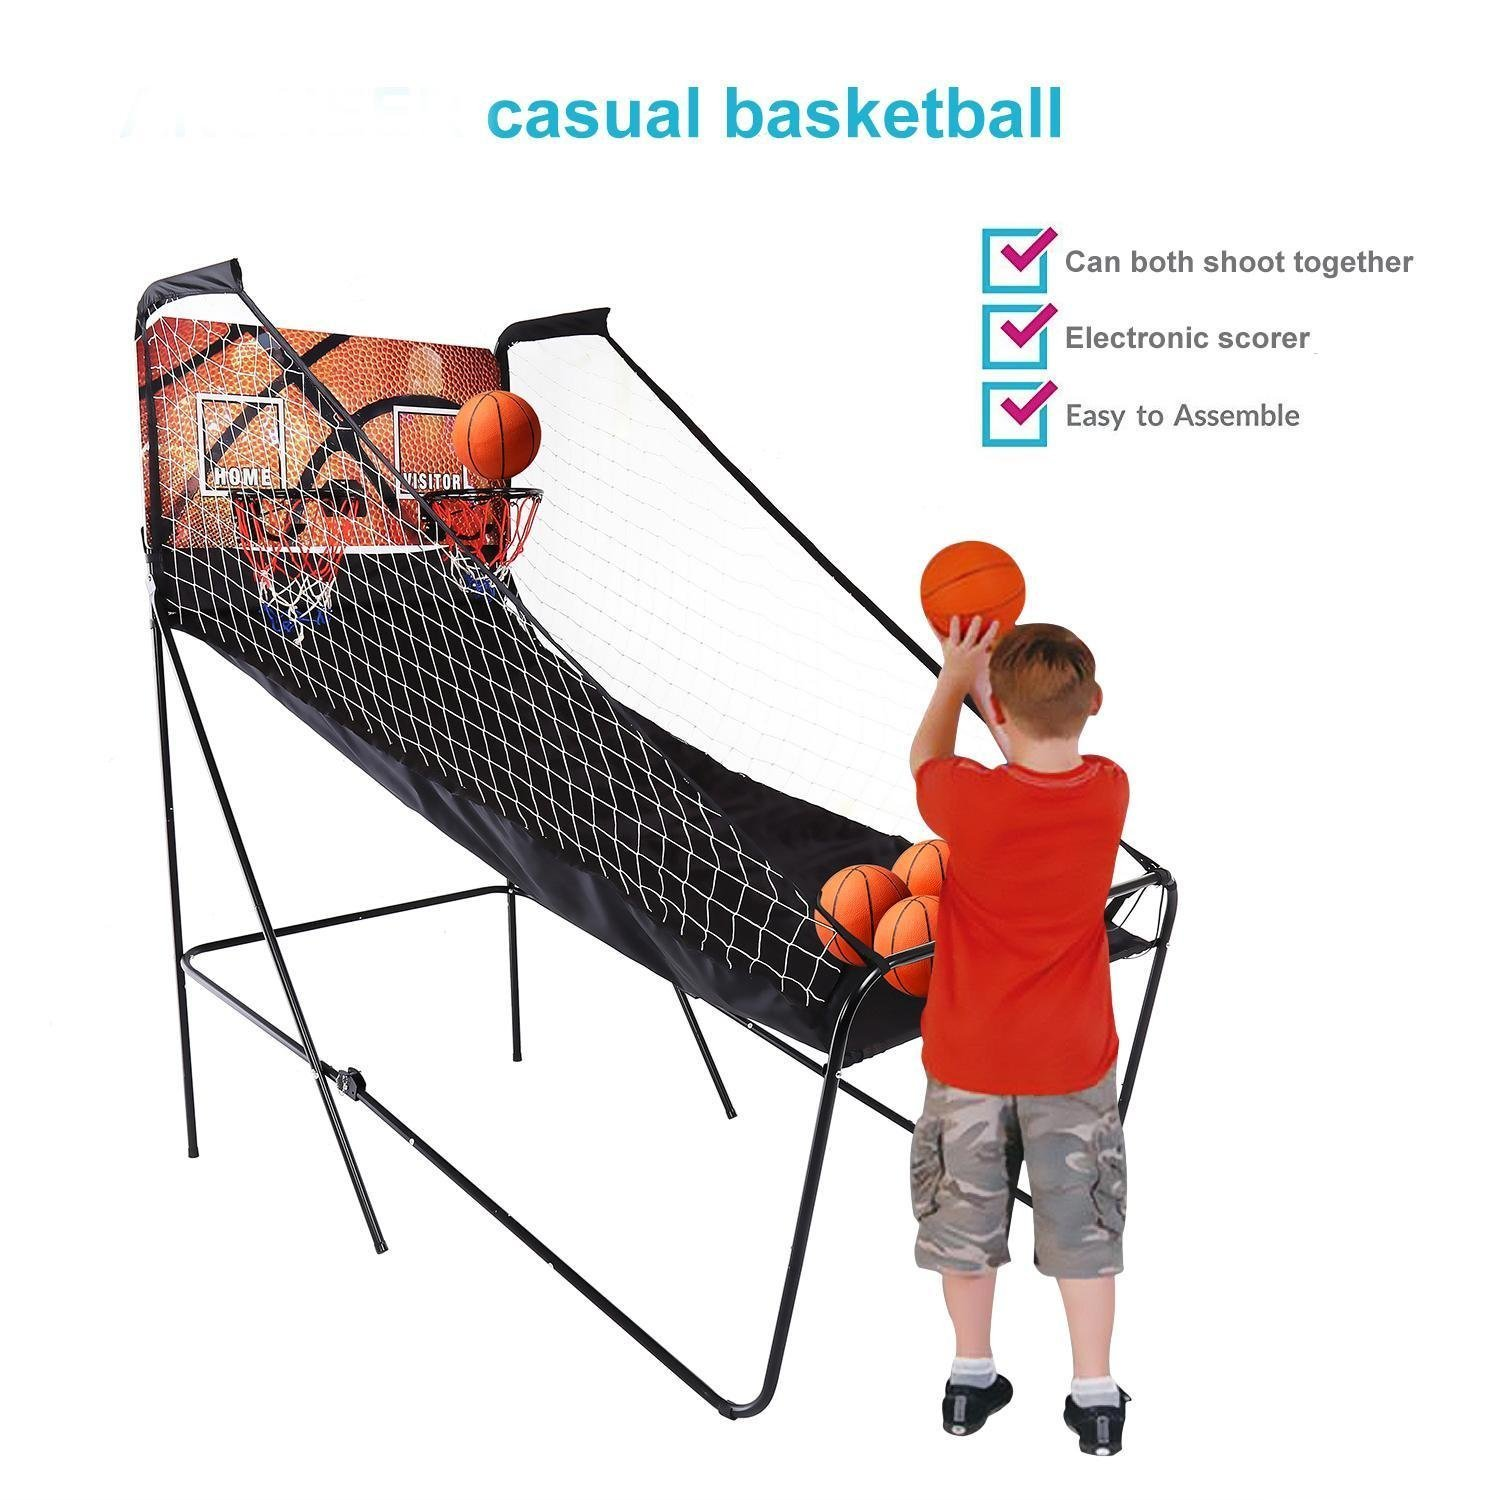 PEATAO Indoor Electronic Basketball Arcade Game 2 Player Double Shot Basketball Stand with 5 Balls(US STOCK) by PEATAO